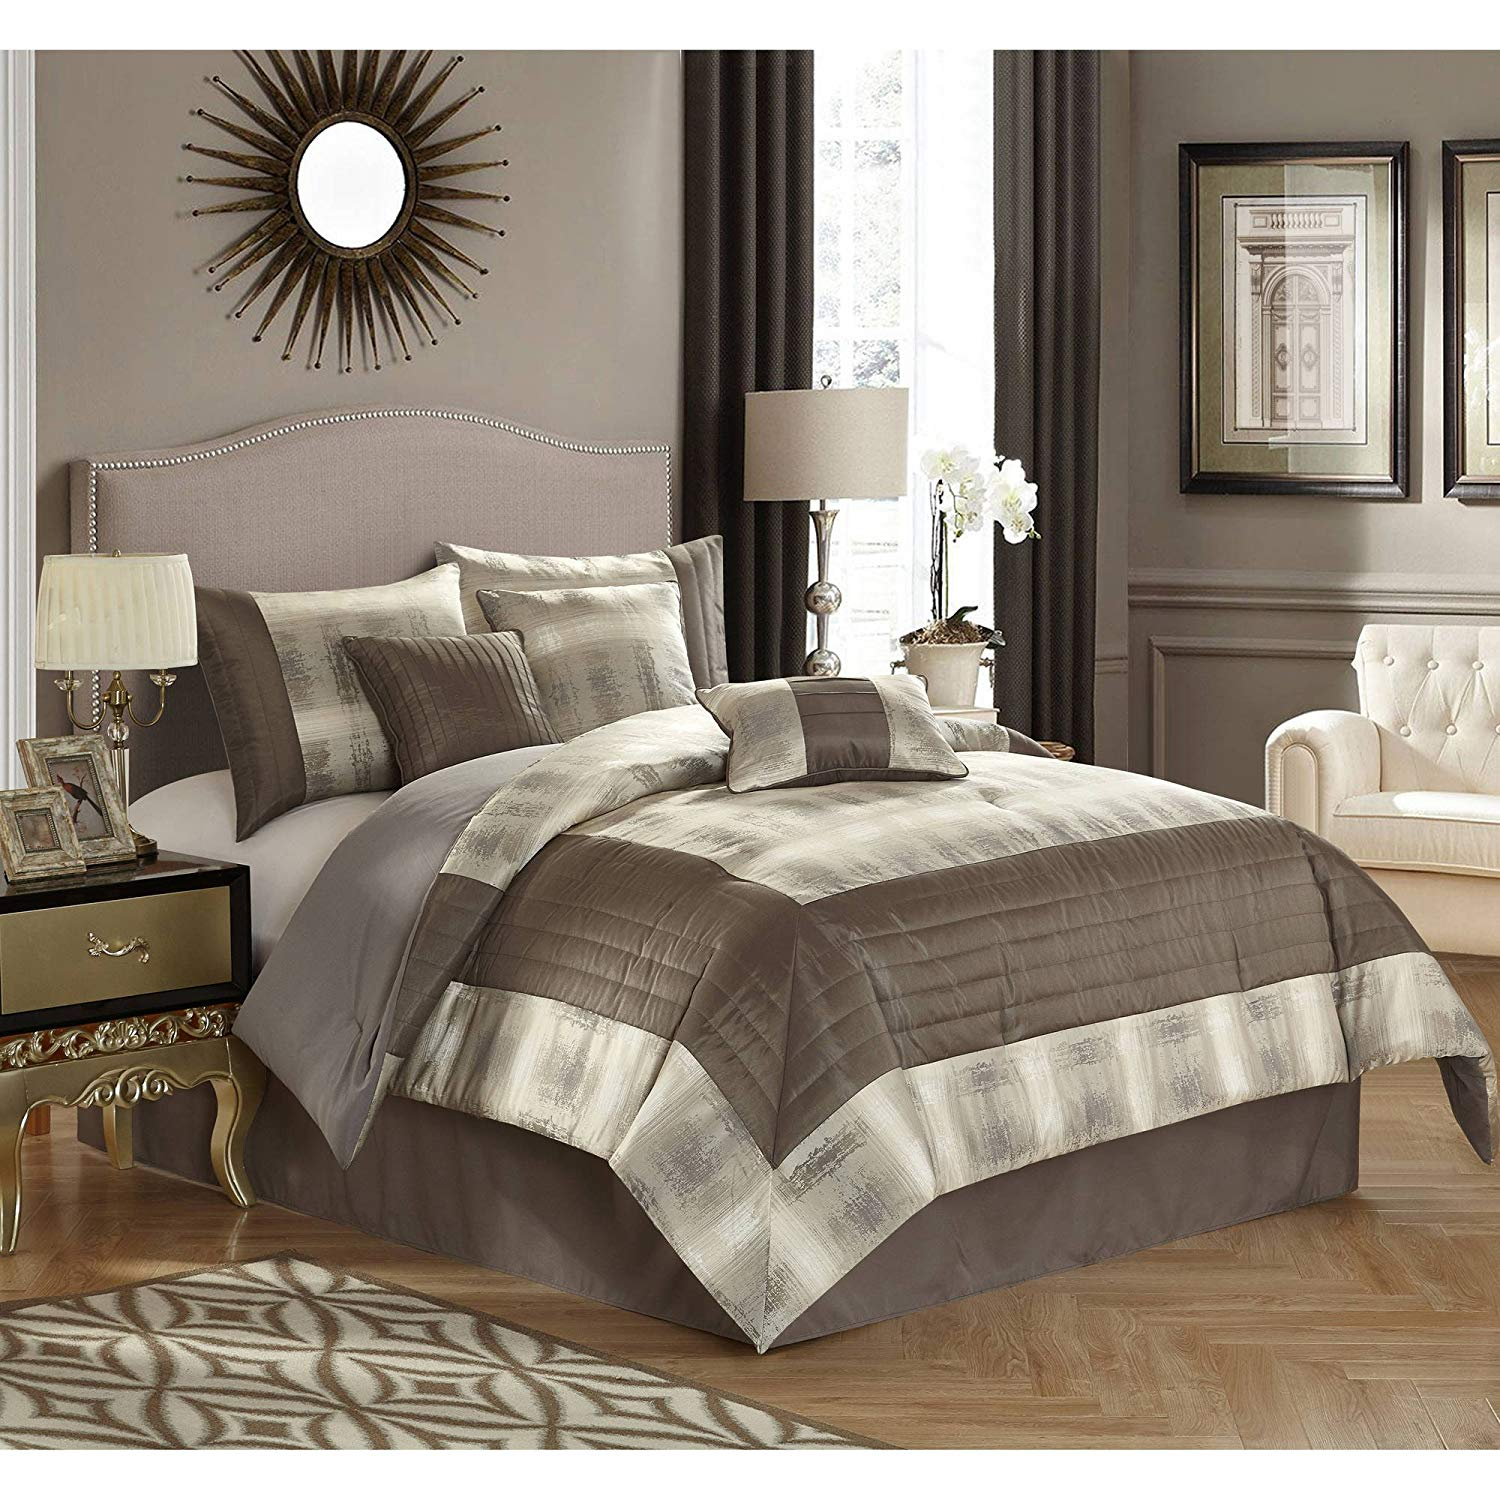 Grey Stripe 7-Piece Bedding Comforter Set, Full/Queen Size